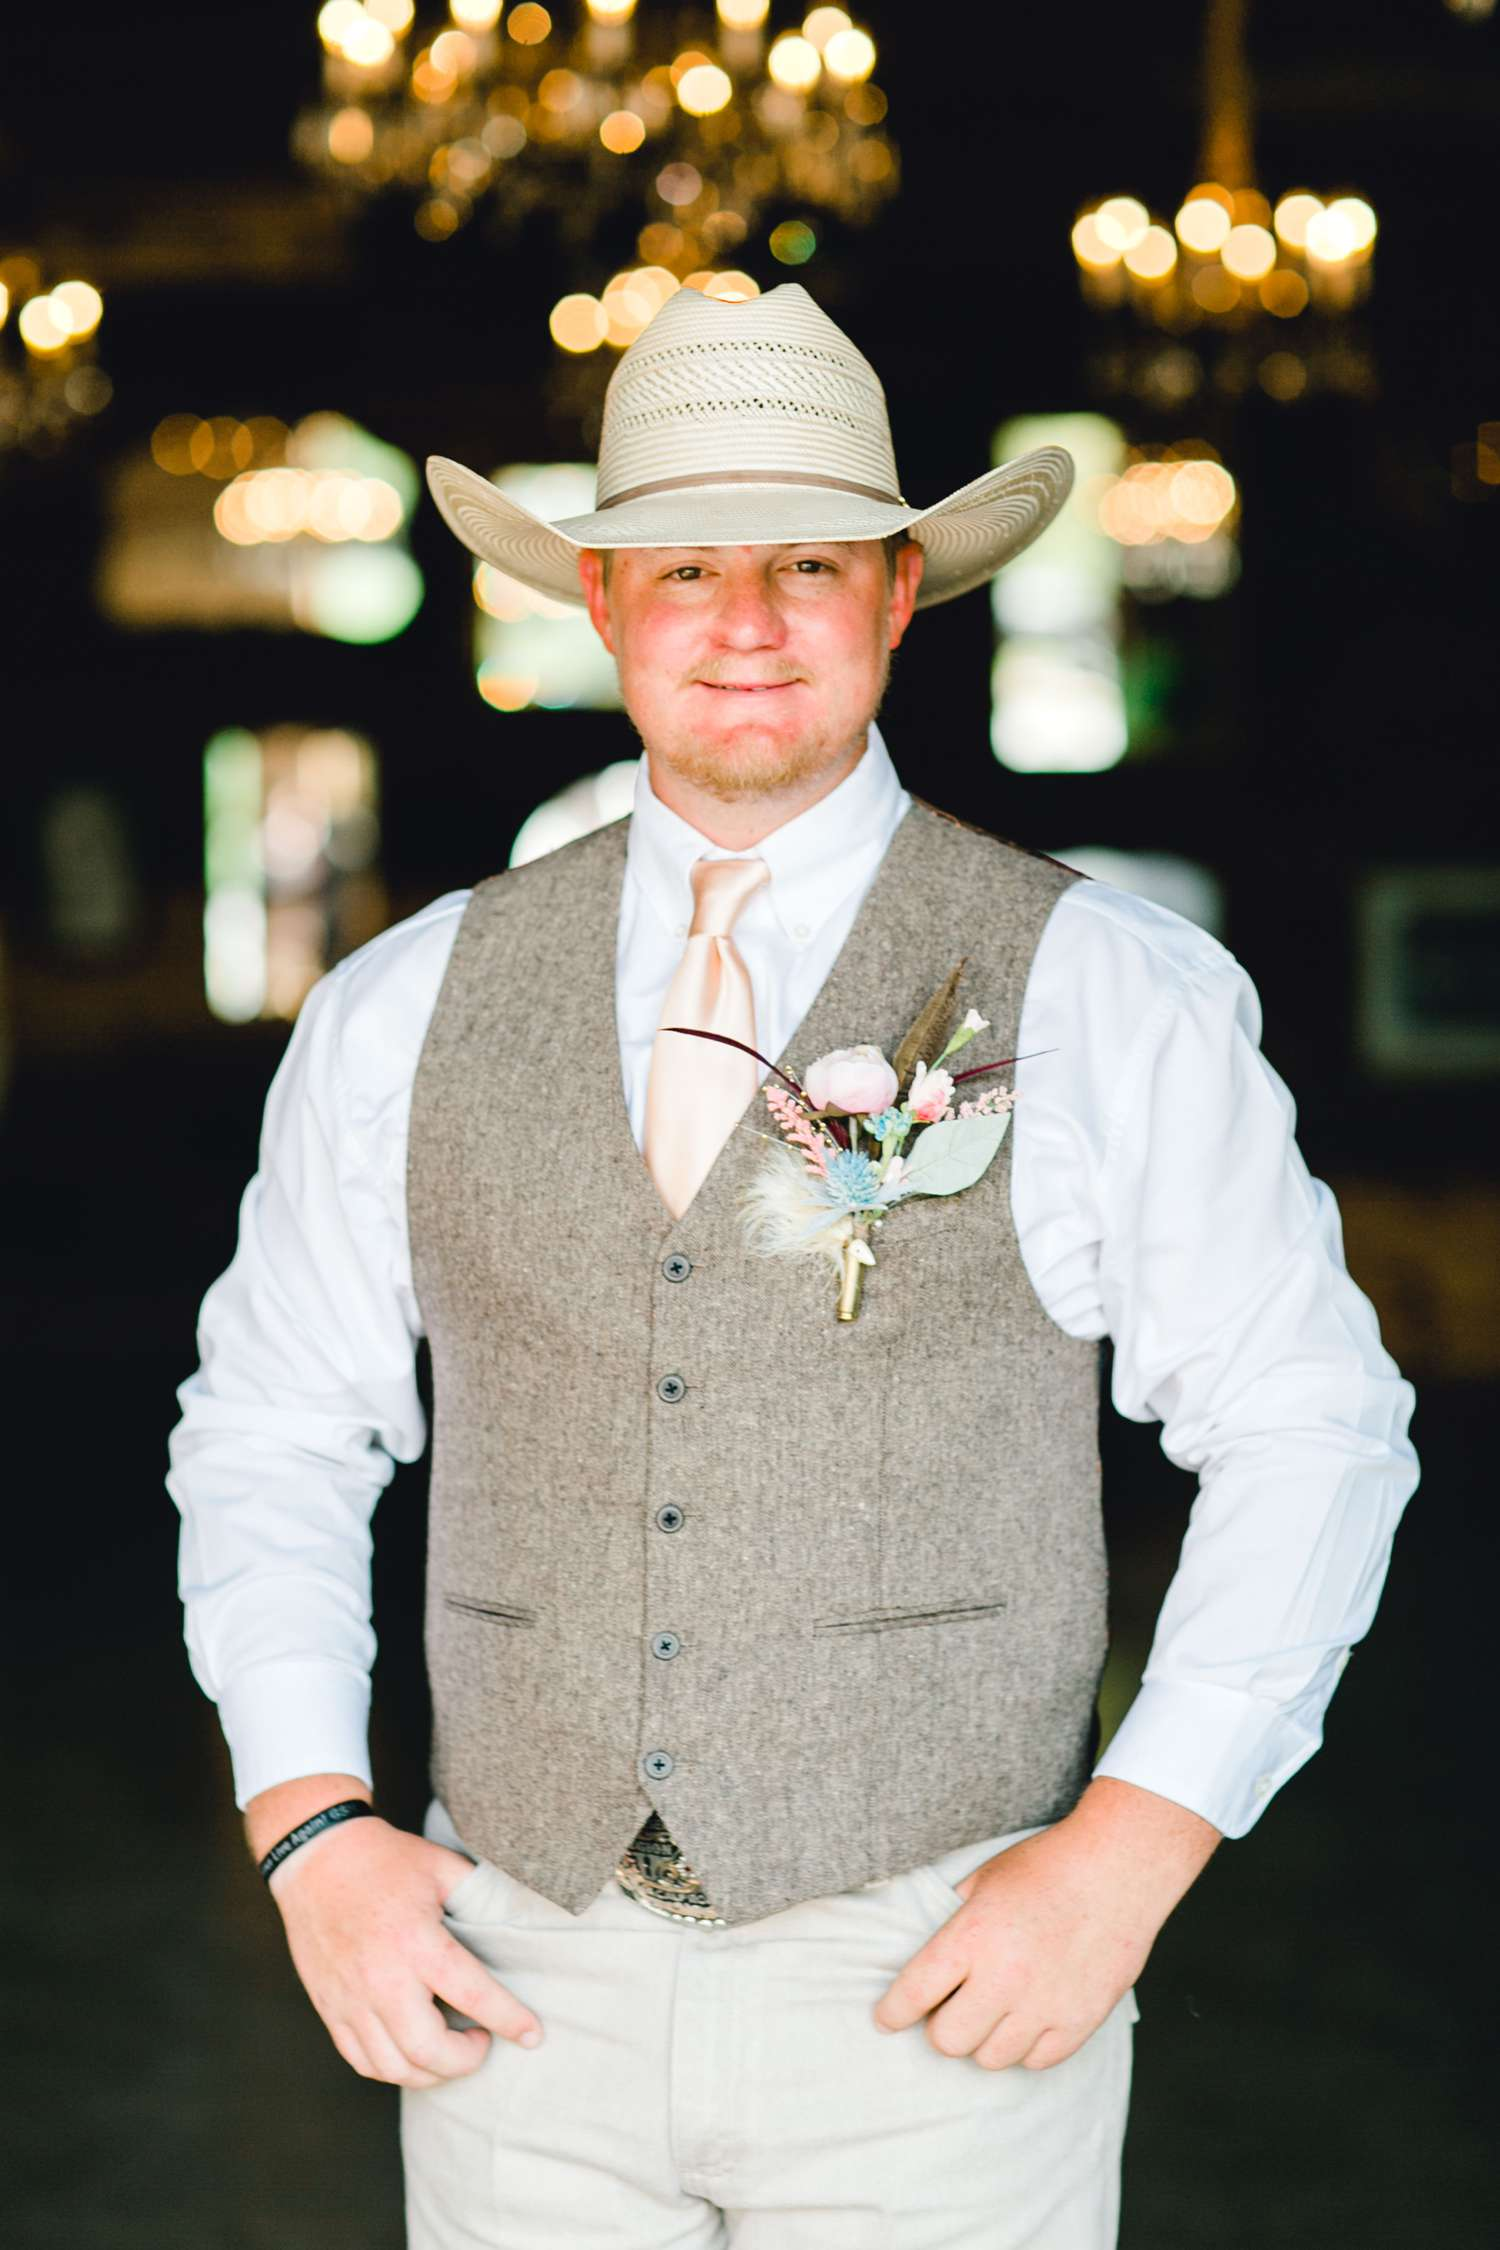 SARAH+TREVOR+BADGETT+SPARROW+CREEK+GRAHAM+TEXAS+ALLEEJ+WEDDINGS_0028.jpg